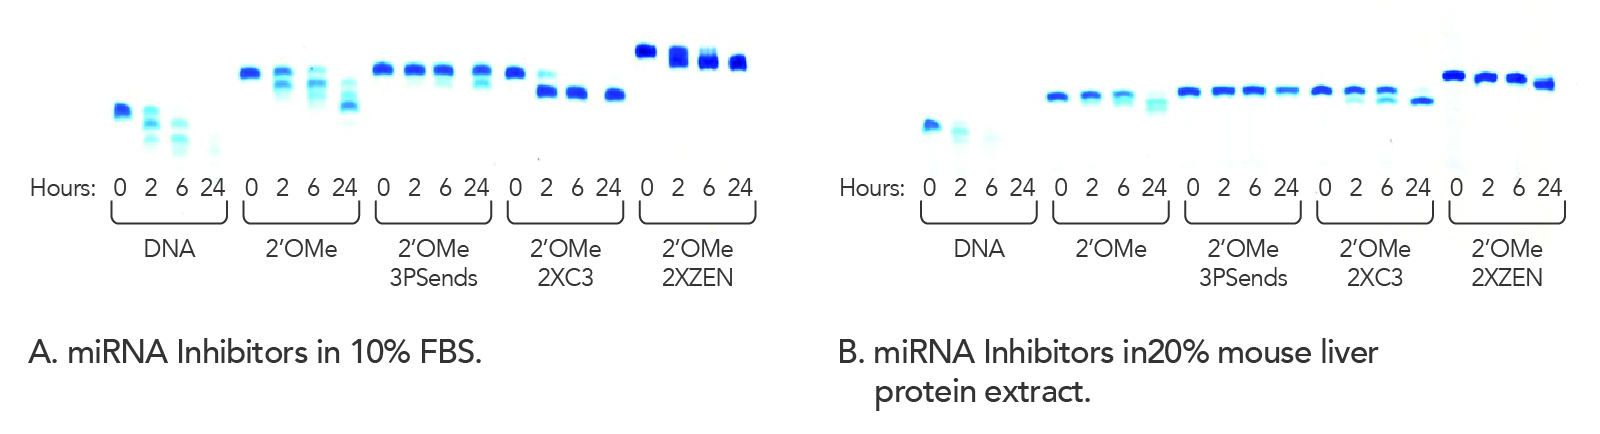 Modified miRNA Inhibitors show nuclease resistance